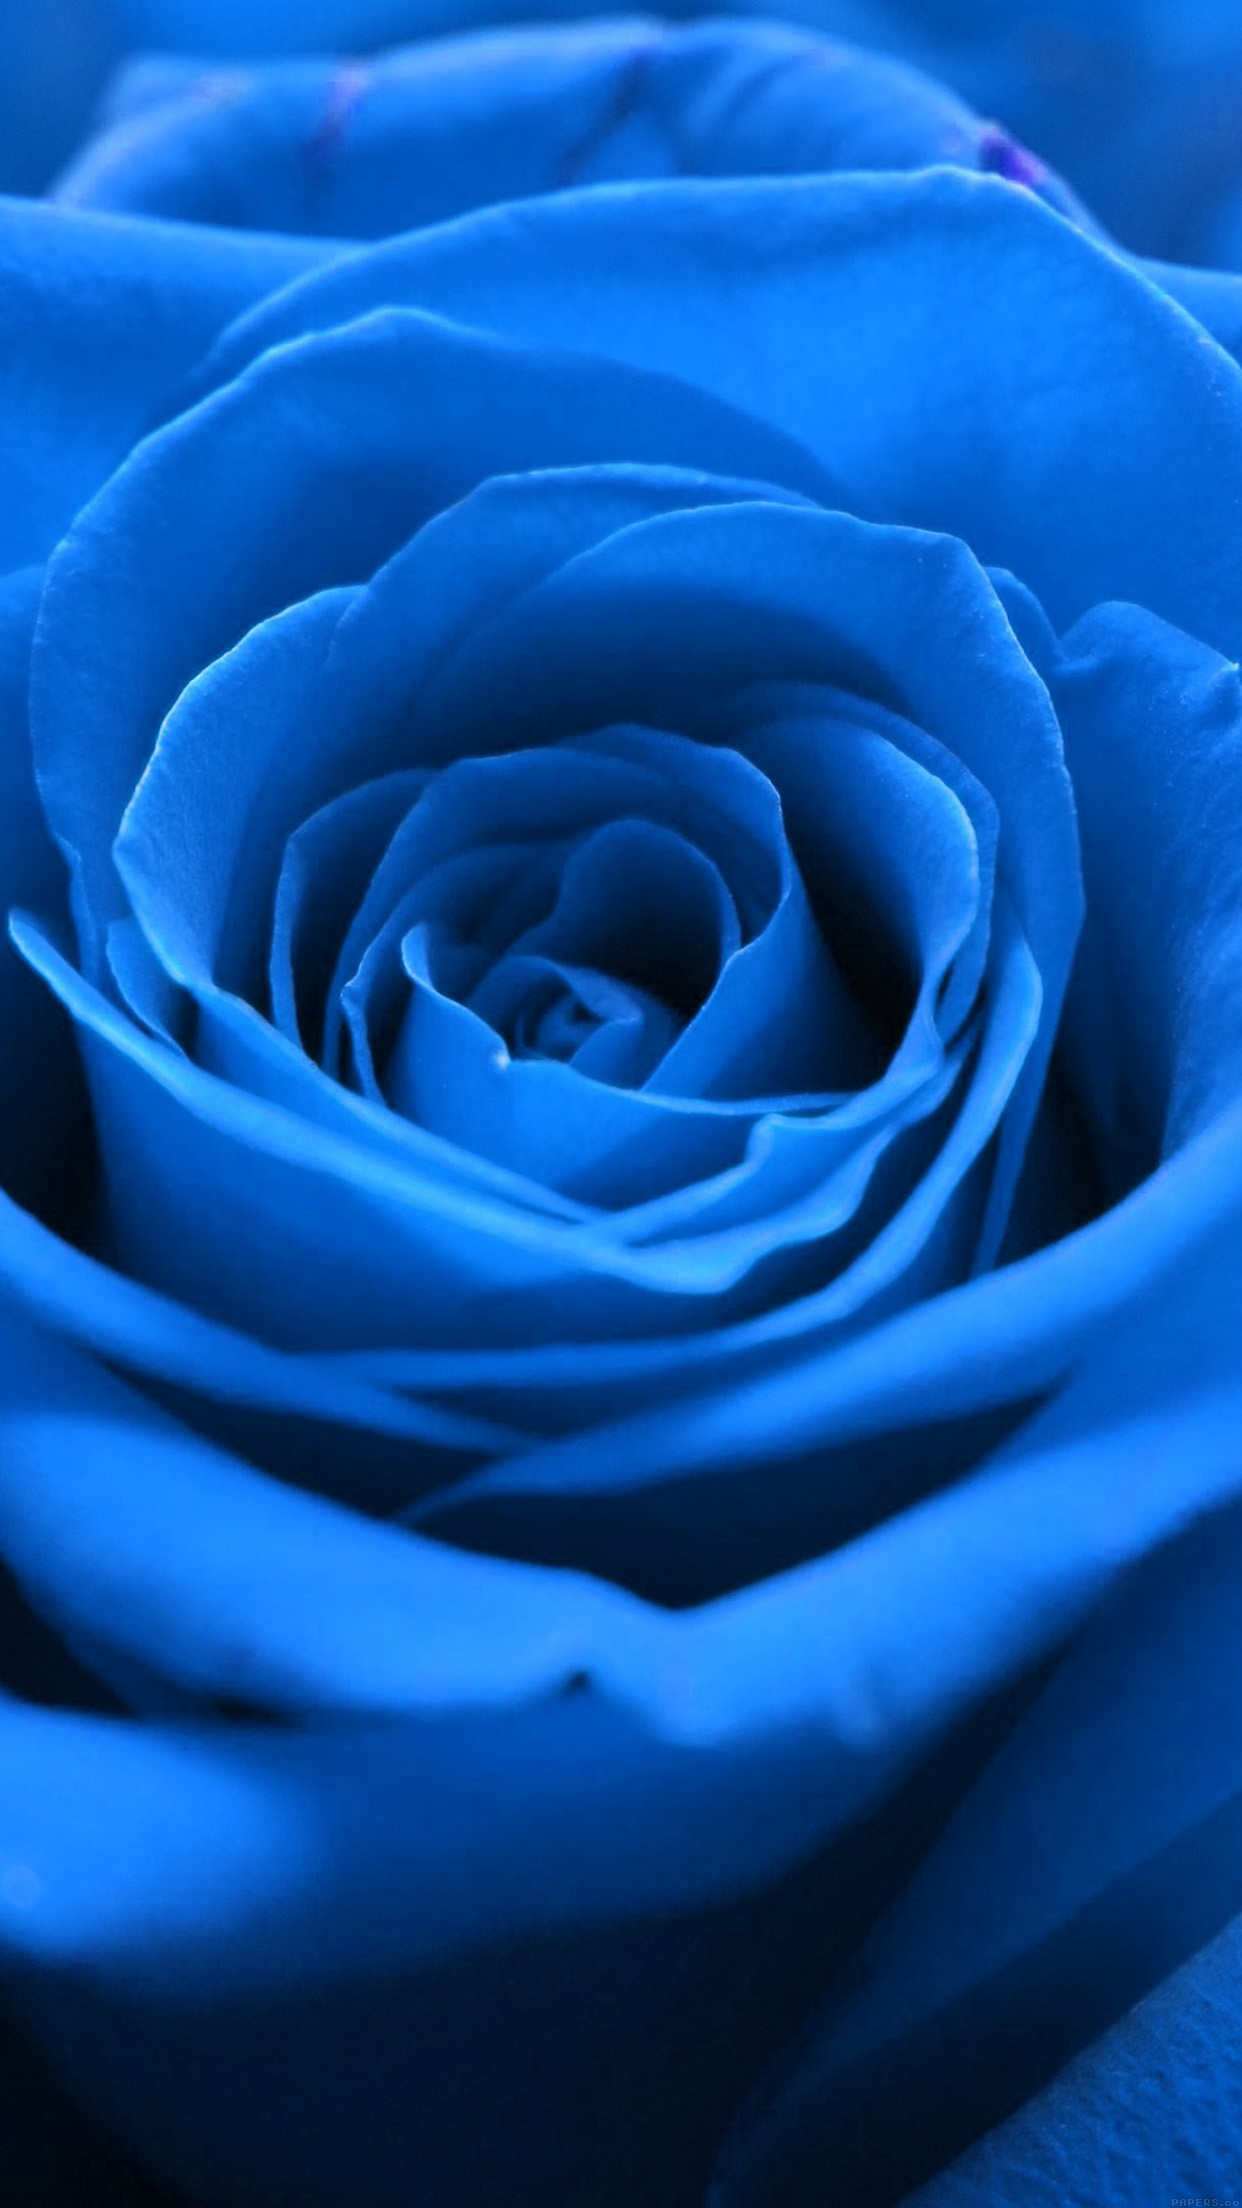 Rose Flower Blue Nature Android Wallpaper Android Hd Wallpapers